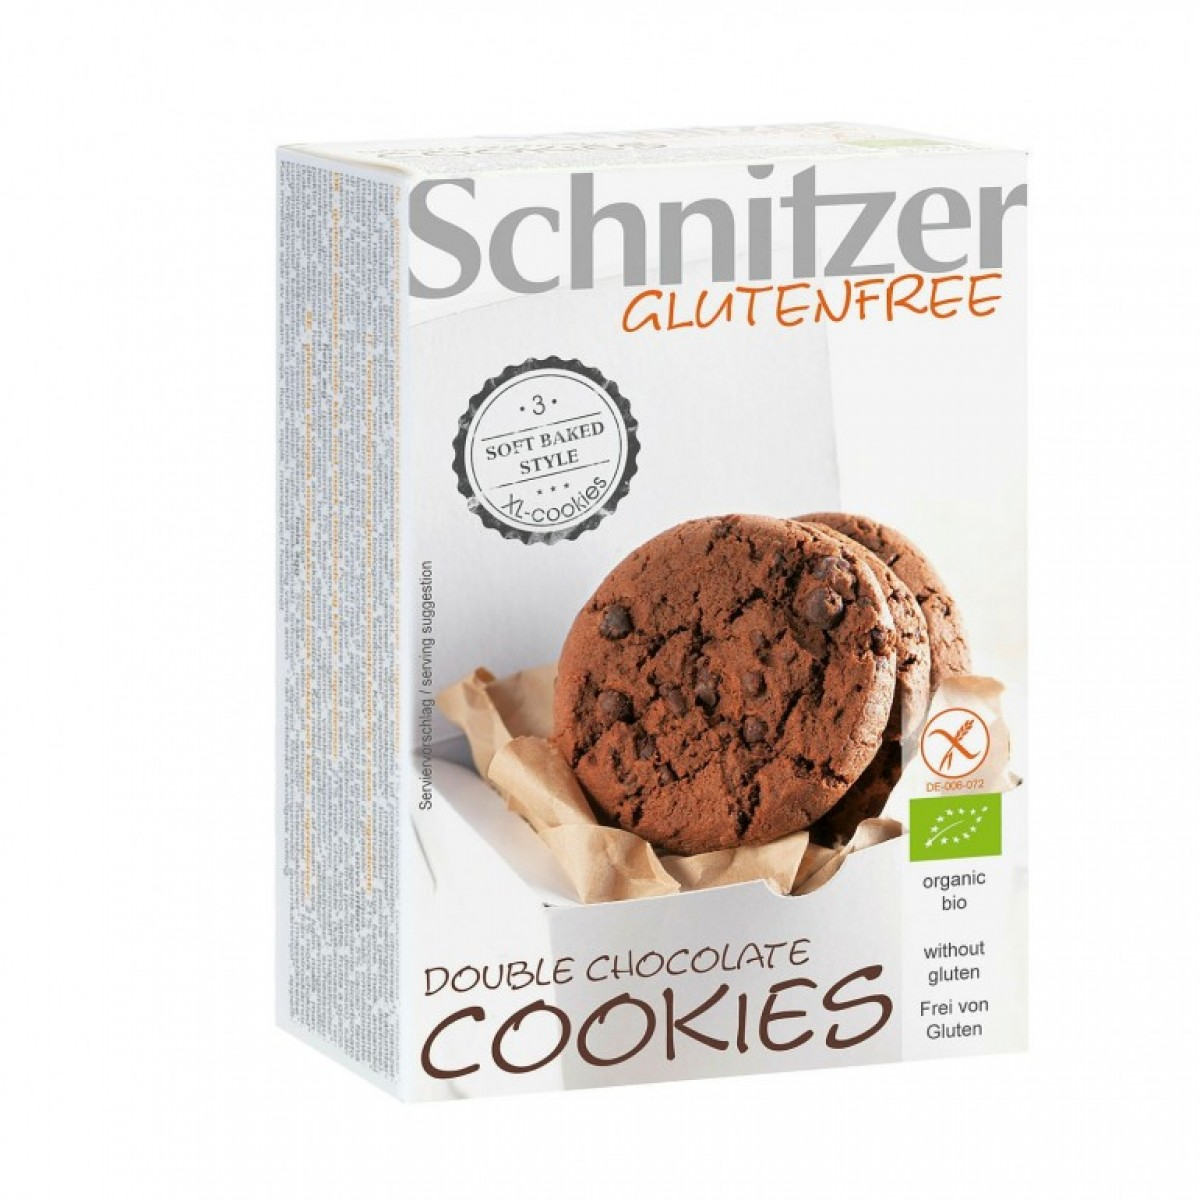 Double Chocolate Cookies (T.H.T. 04-02-19)